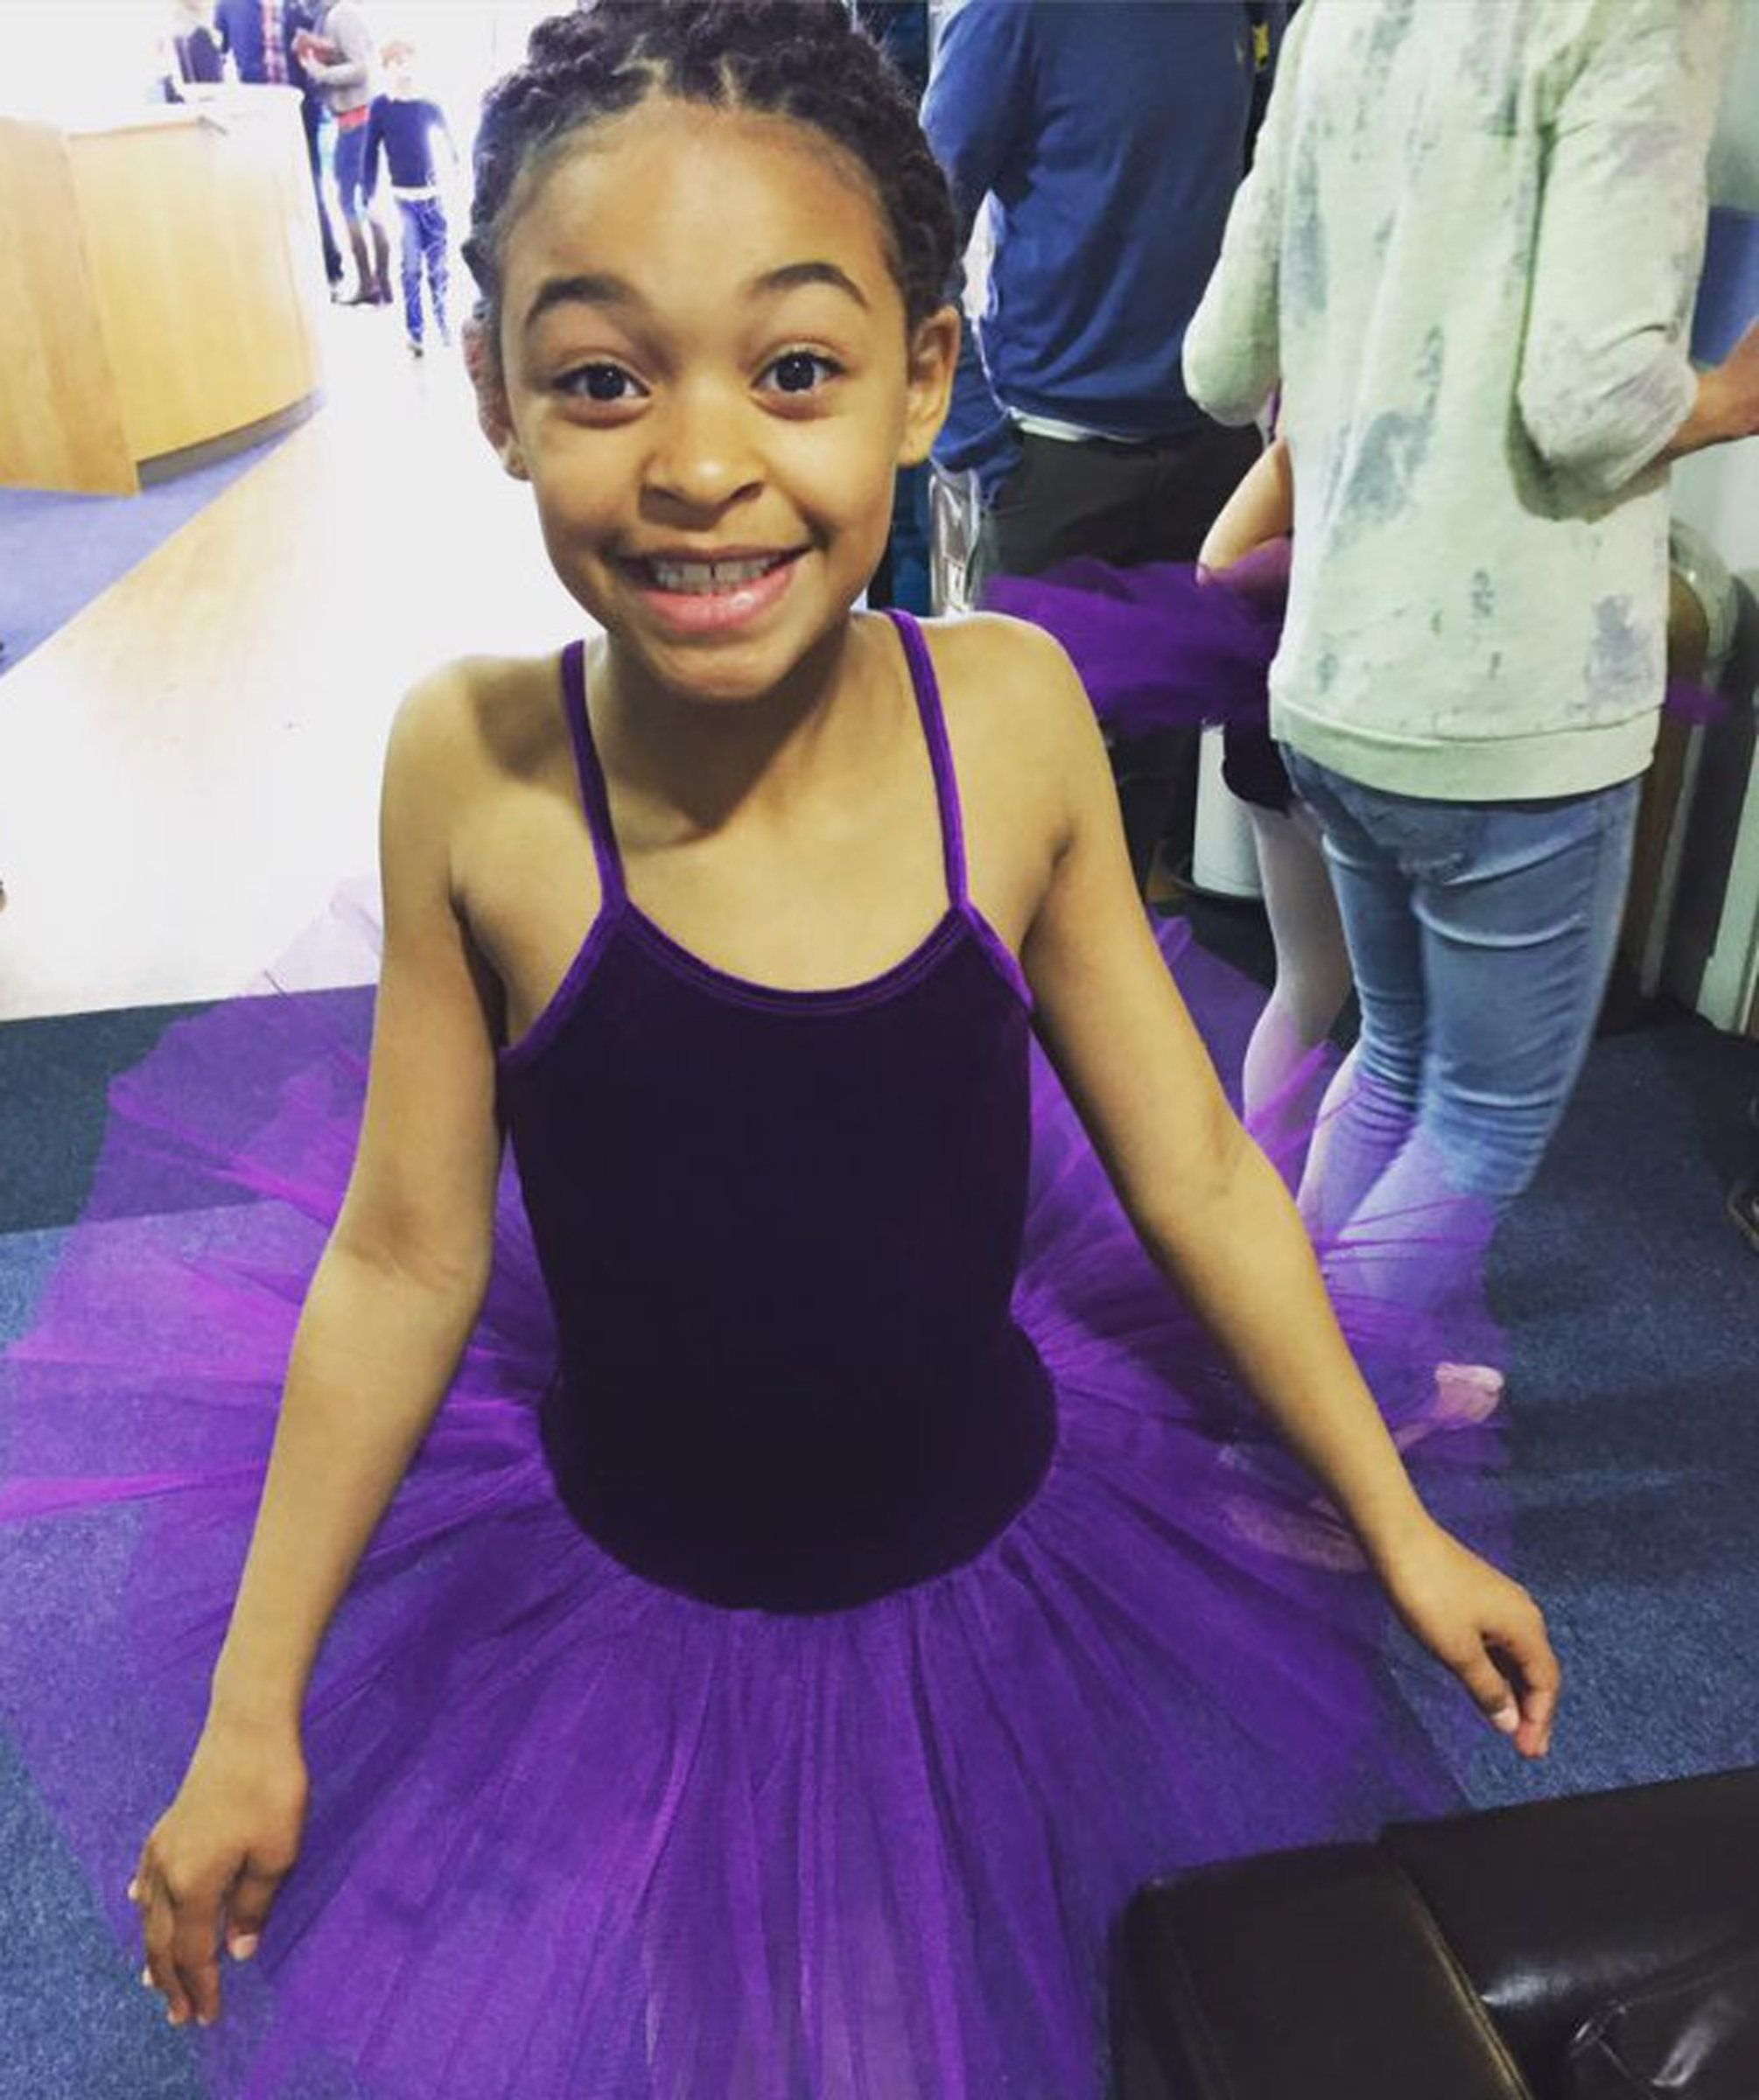 Mum Says Ballet School Made Daughter Feel 'Singled Out For Her Skin